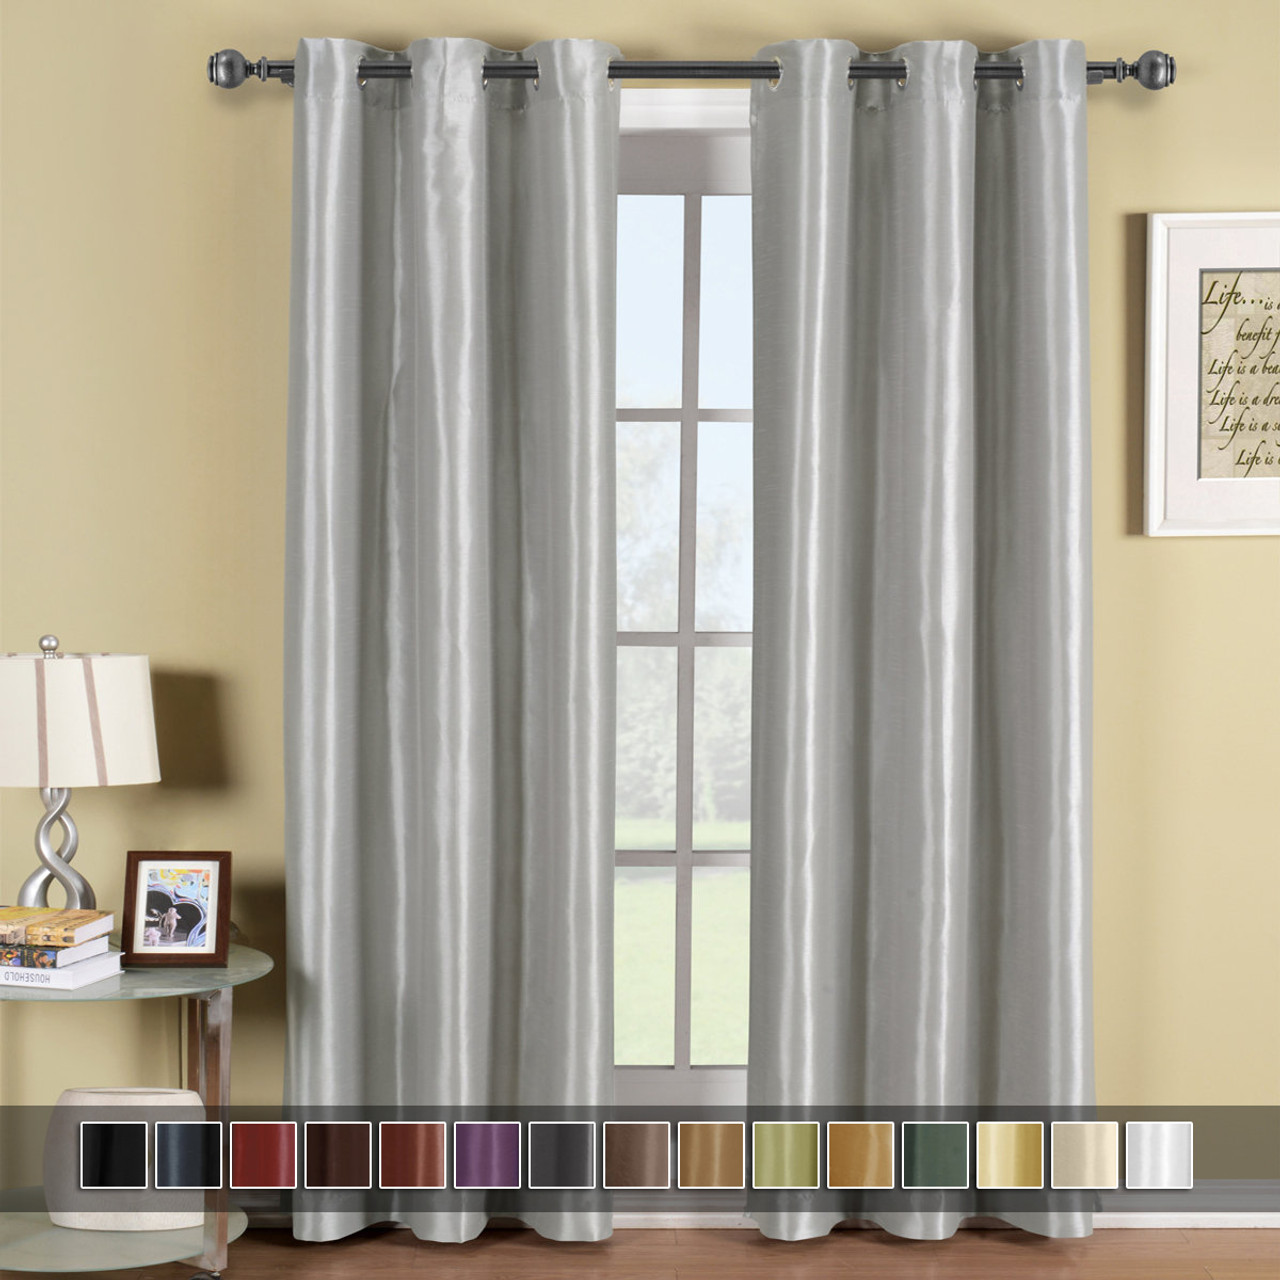 Curtains Blinds Galleria Grommet Blackout Thermal Insulated Tonal Stripe Window Curtain Panel Home Furniture Diy Mhg Co Ke